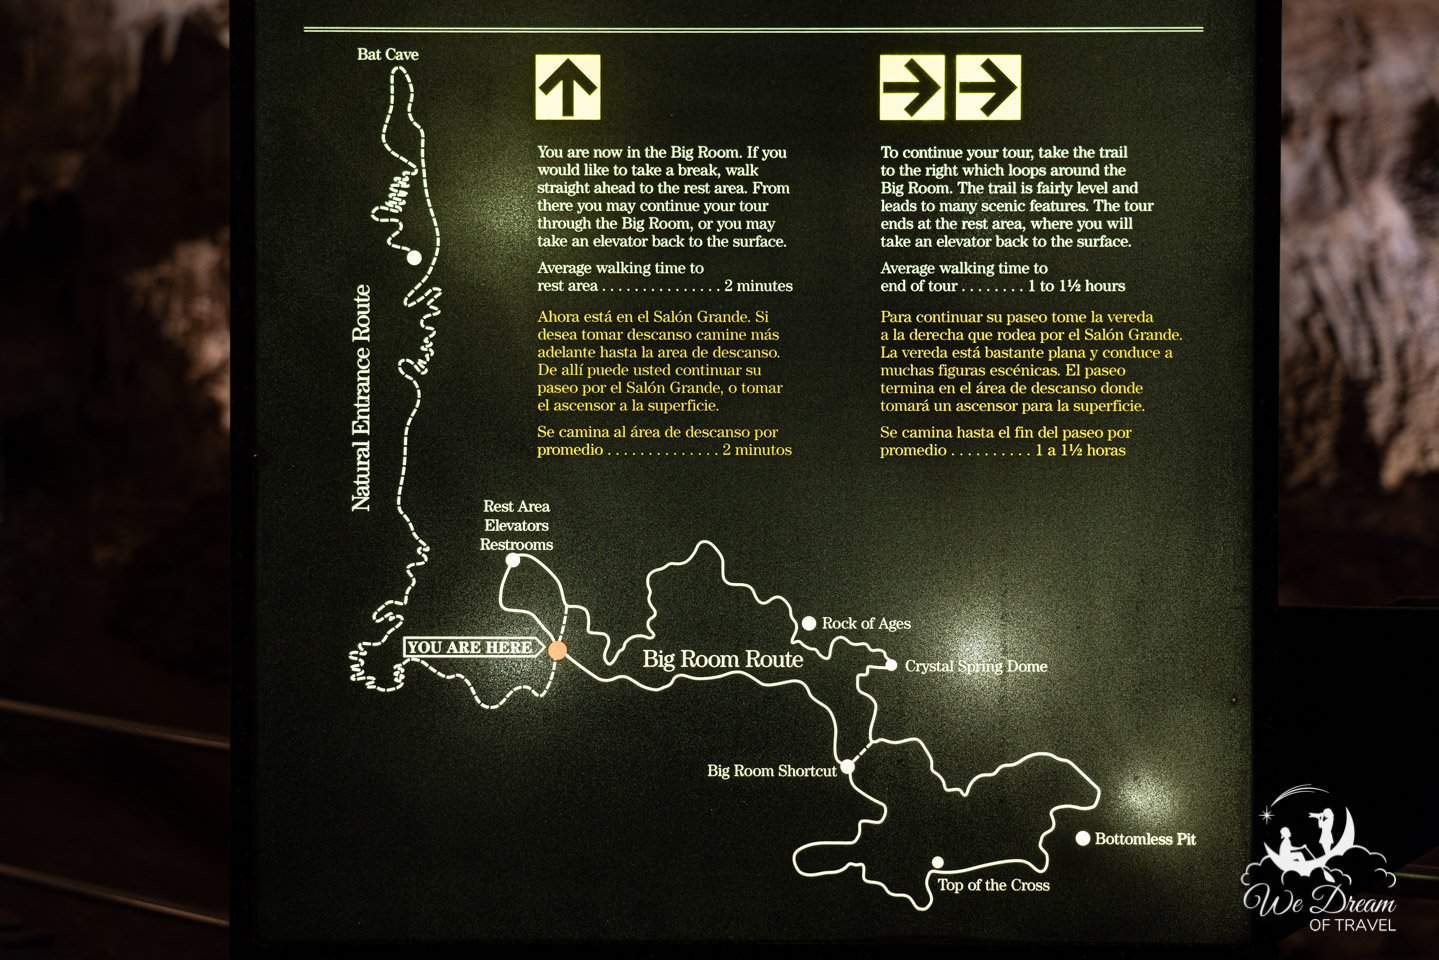 Carlsbad Caverns map showing the cave trails.